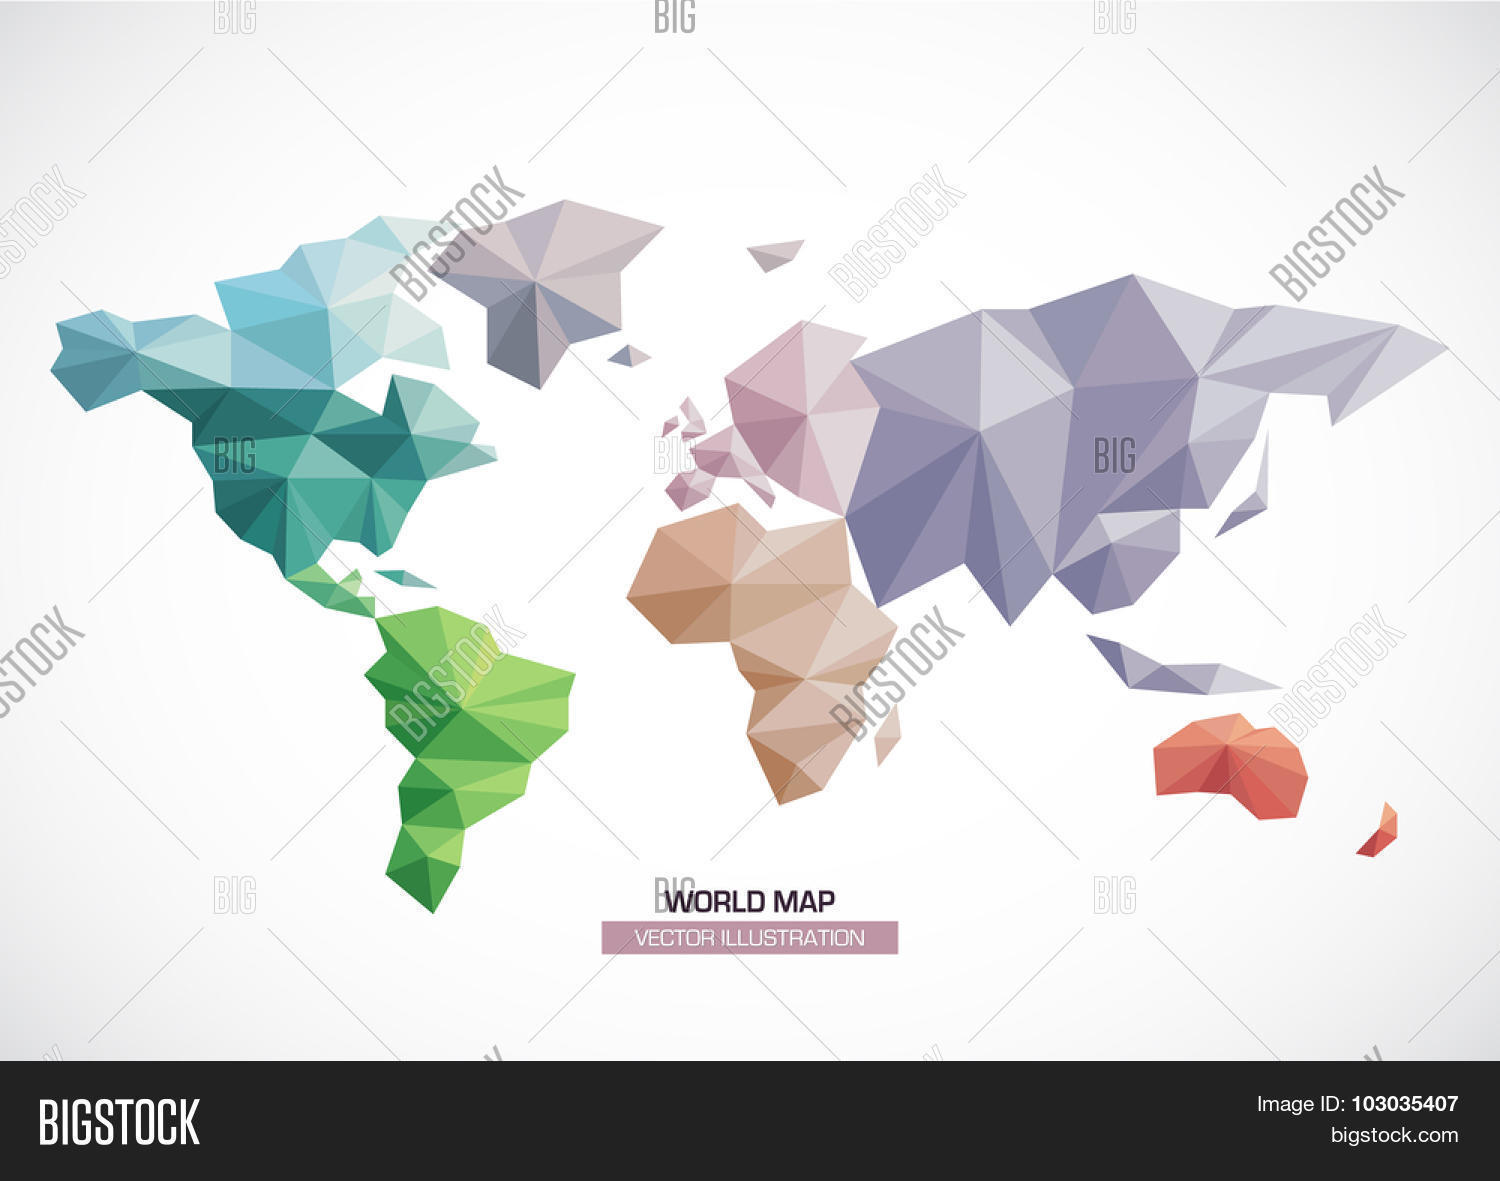 Vector world map vector photo free trial bigstock vector world map design geometric style triangle pattern continents with different colors gumiabroncs Image collections